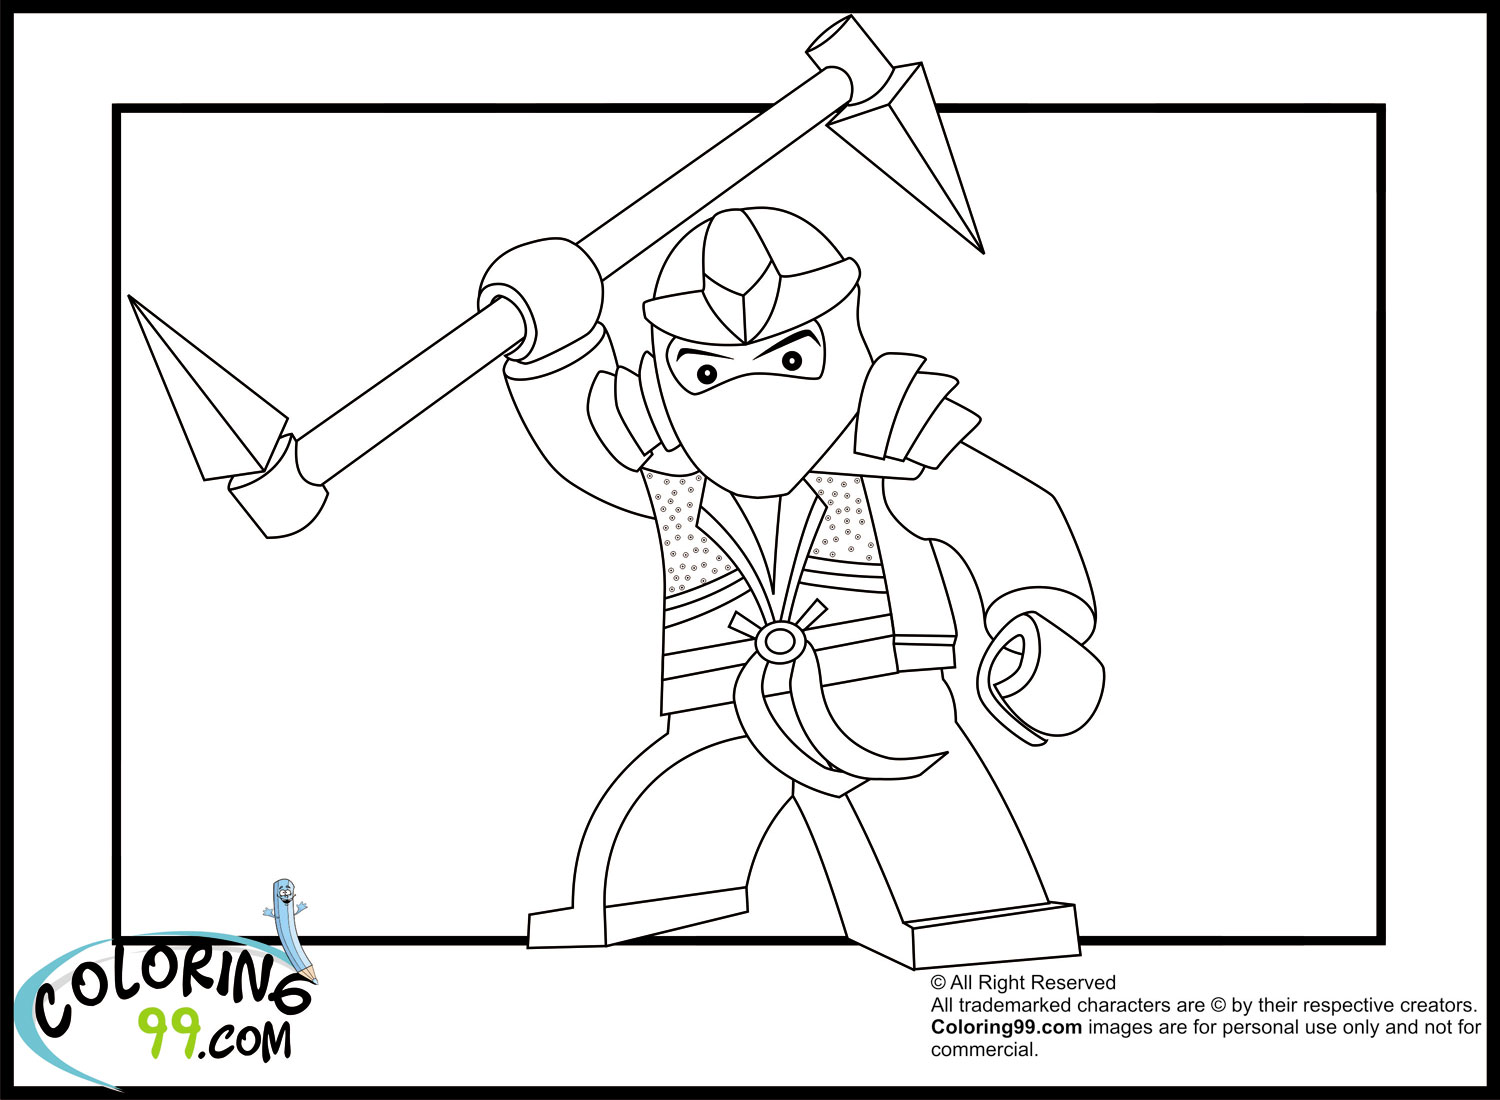 lego ninjago lloyd the green ninja coloring pages | minister coloring - Coloring Pages Ninjago Green Ninja